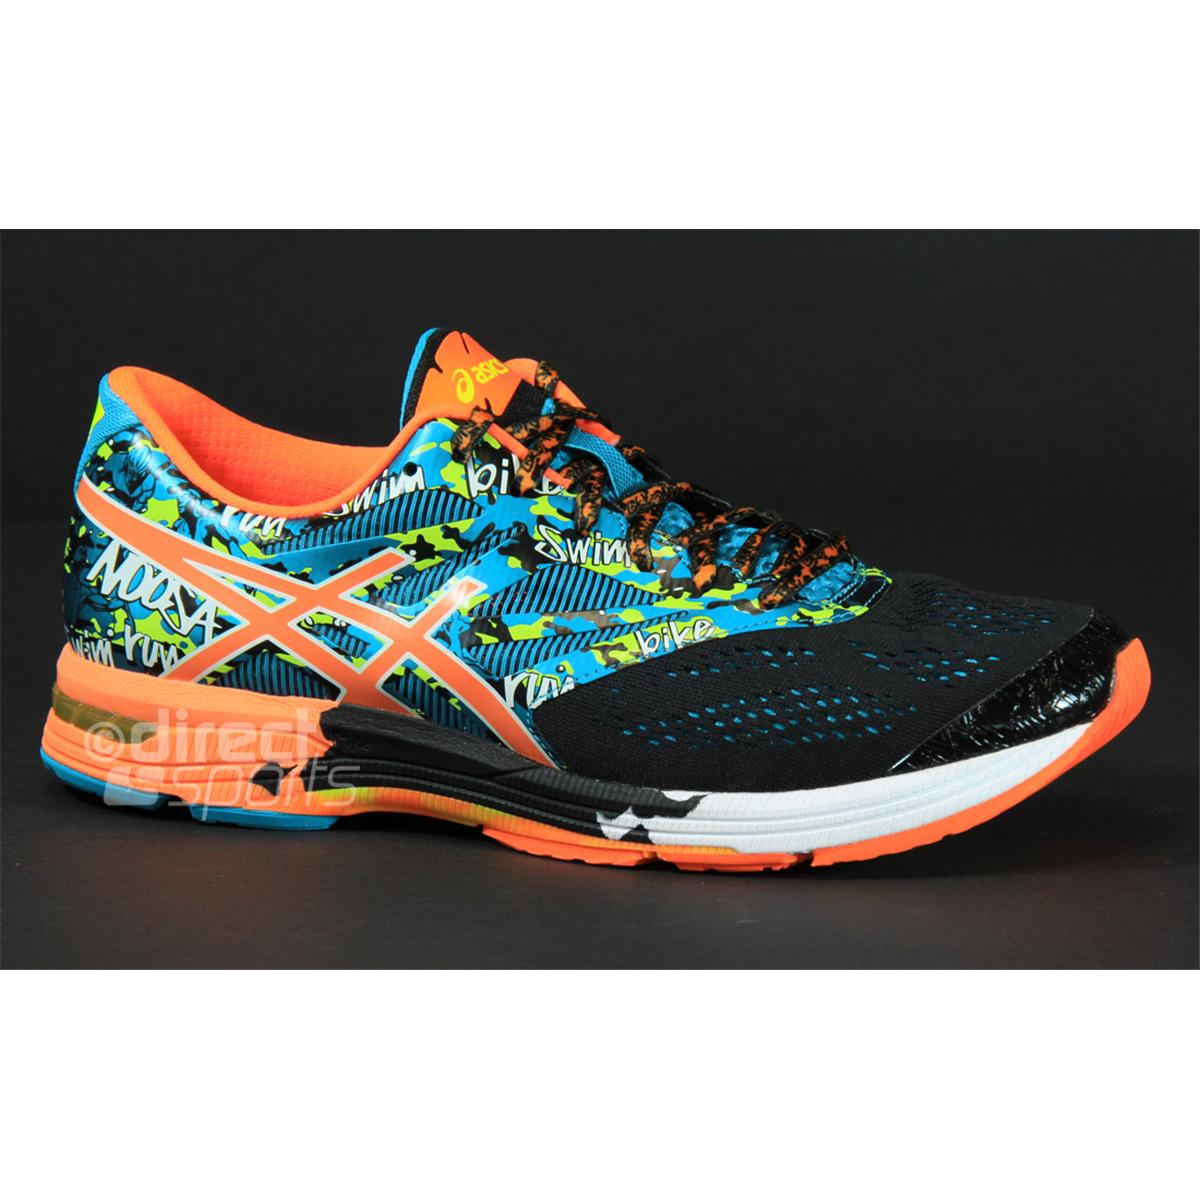 Order Mens Asics Gel Noosa Tri 10 - Dssport Running Mens Running Shoes Race Speed Running Asics Gel Noosa Tri 10 Mens Running Shoes Productid 3d18416